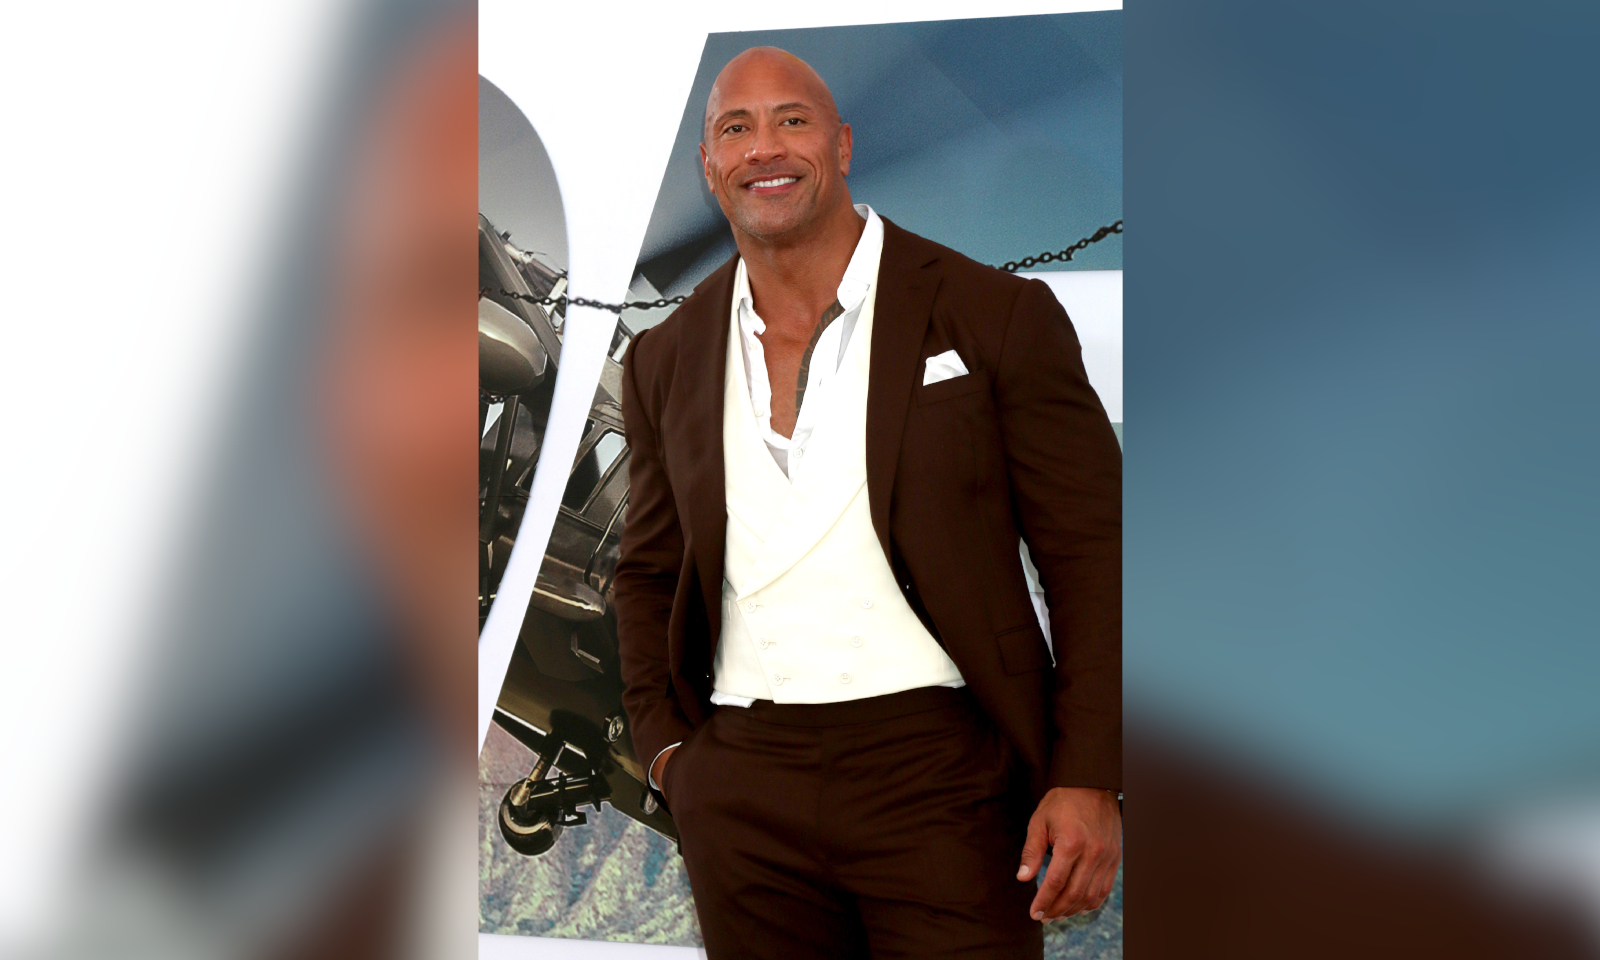 Dwayne Johnson: Forbes No. 1 Highest Paid Male Actor